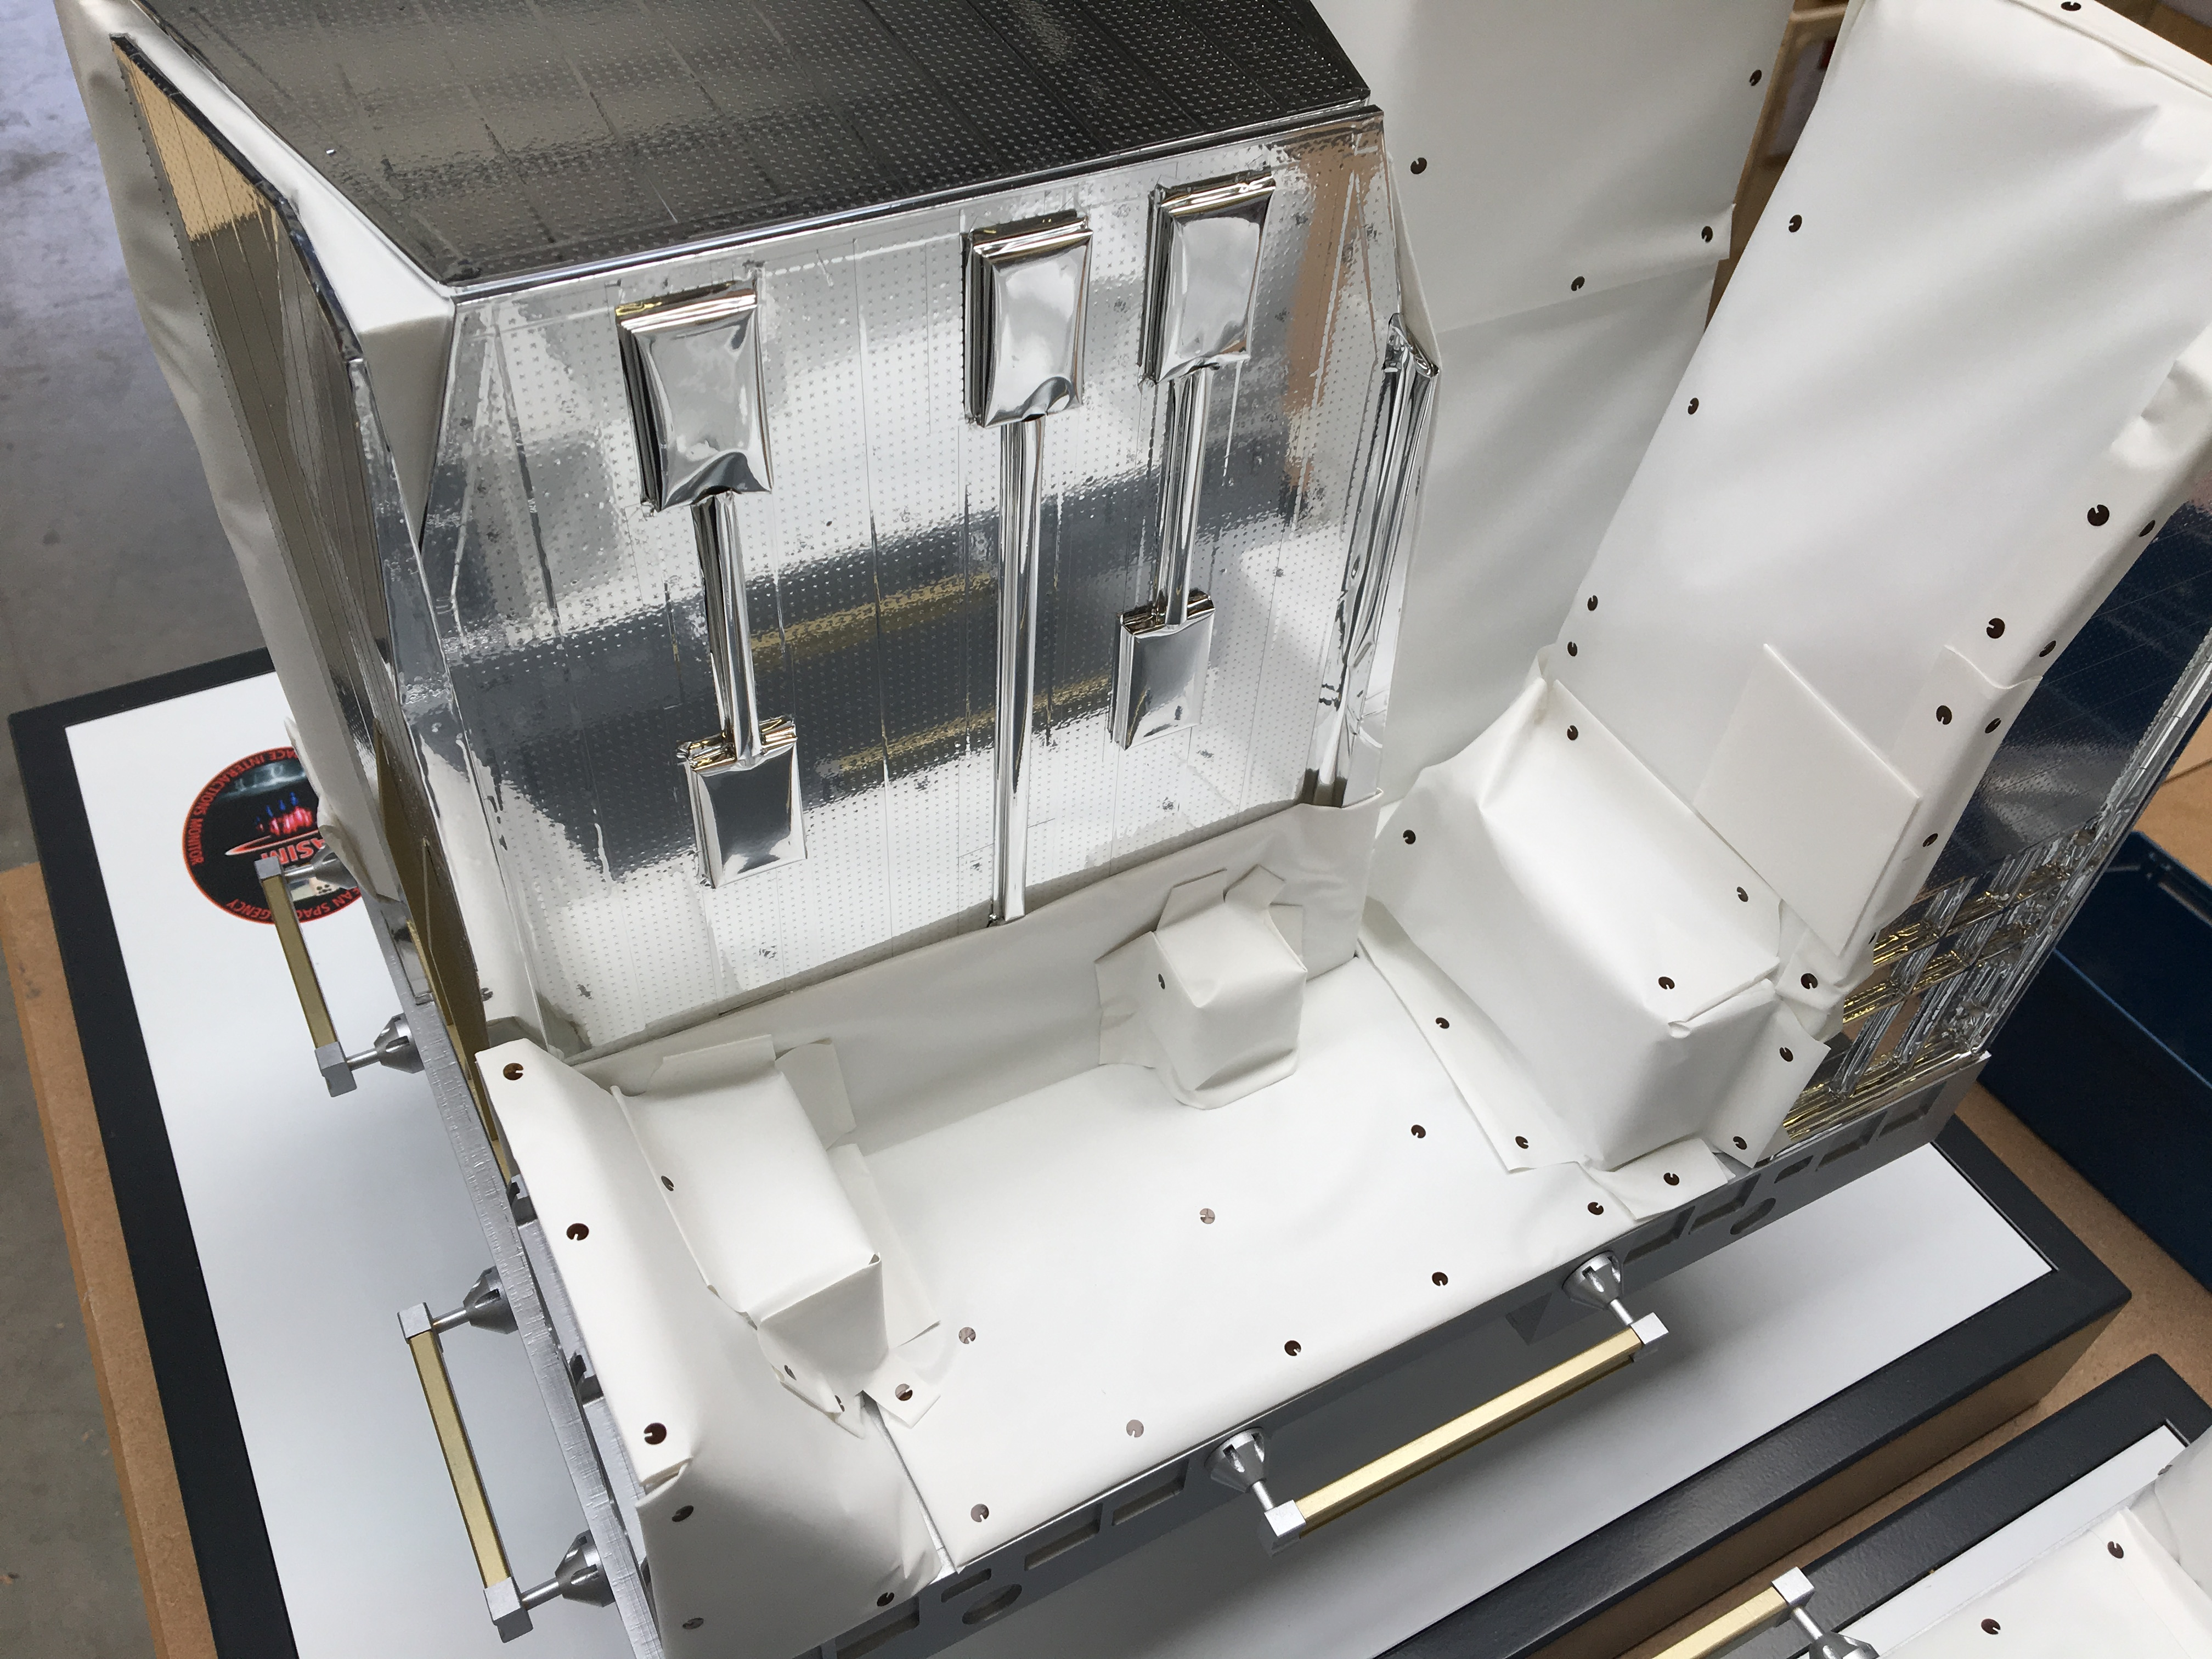 ASIM model scale 1:3 for TERMA AS Space model ISS